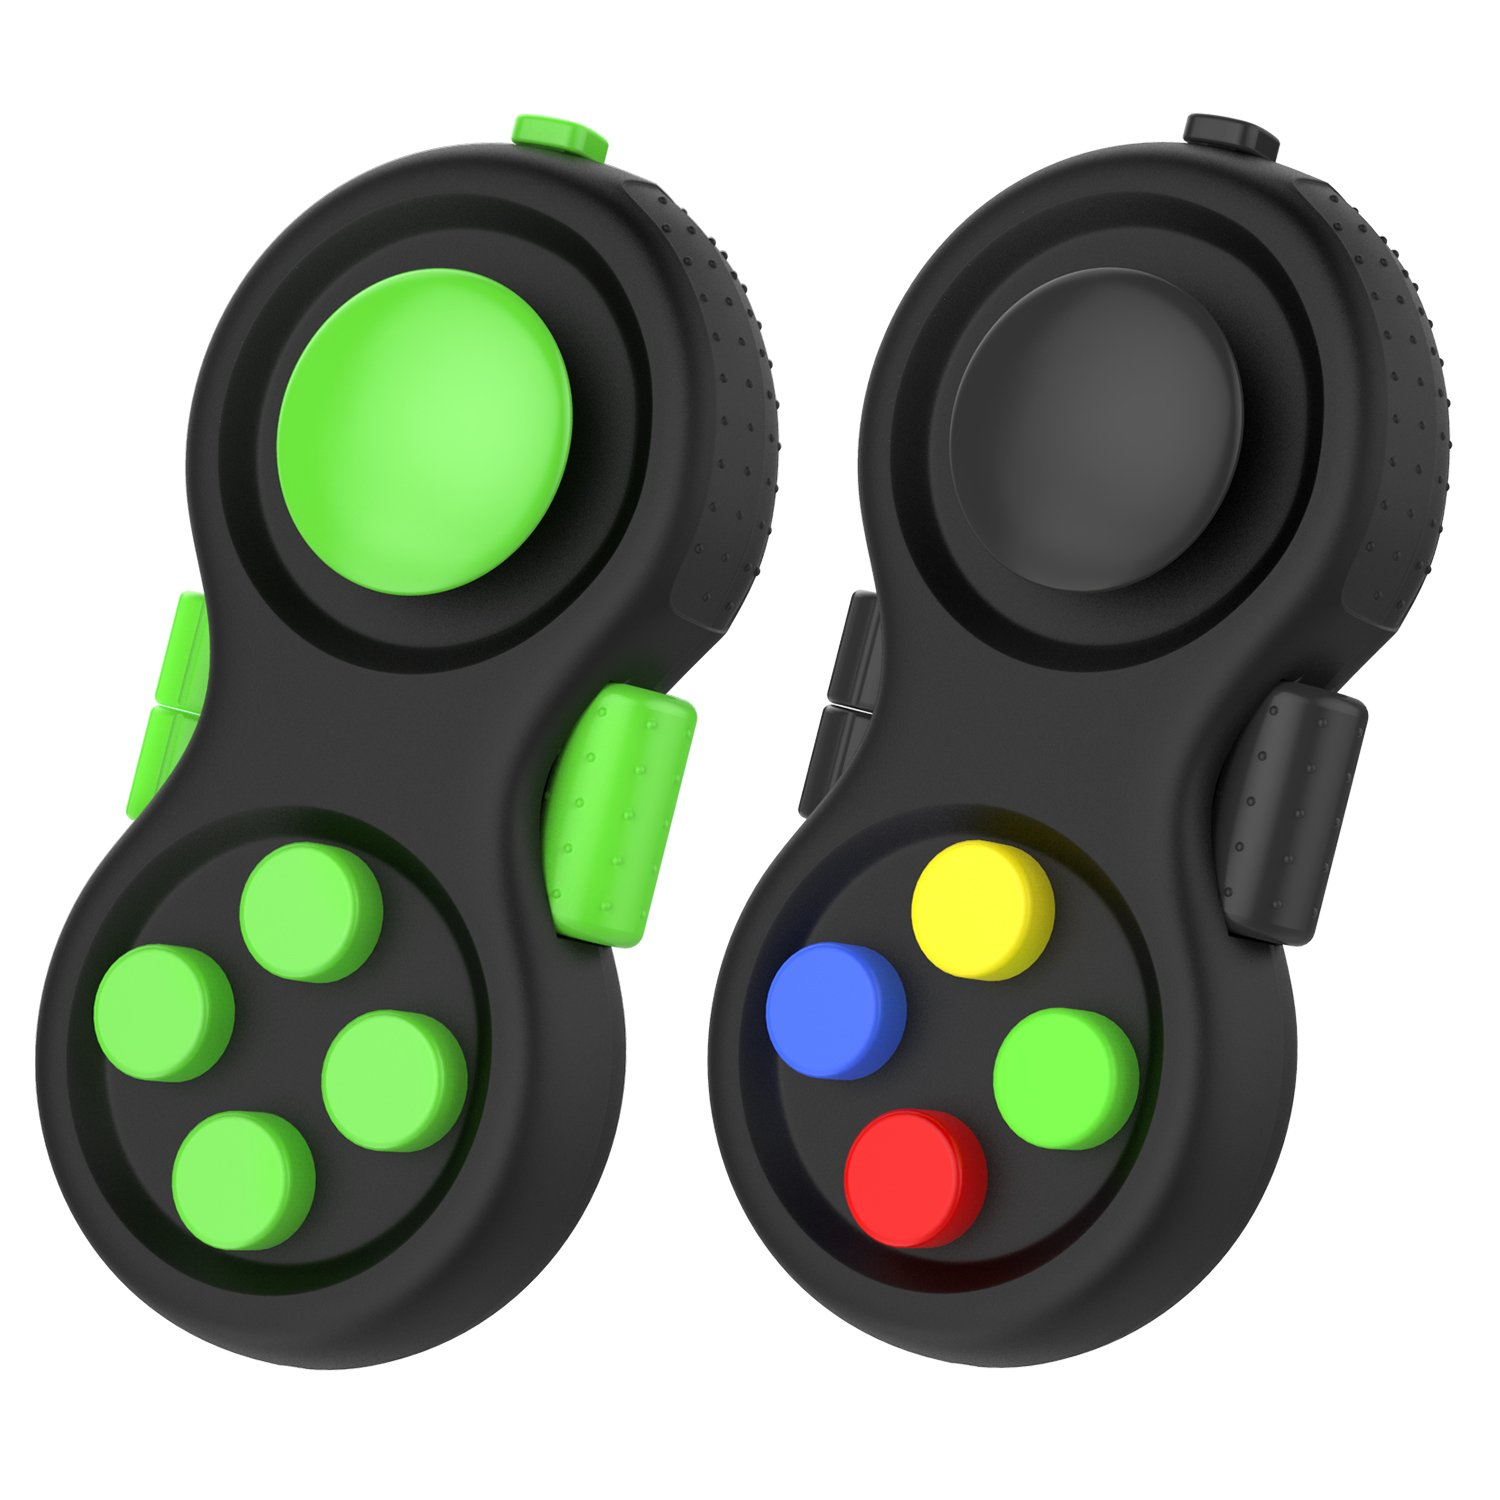 Fidget Controller Pad, ATiC [2 Pack] Stress Reducer Classic Game Pad Anti-anxiety Focus Hand Shank Toy for ADD, ADHD, Autism Kids and Adults Killing Time, Colorful/Black + Green/Black